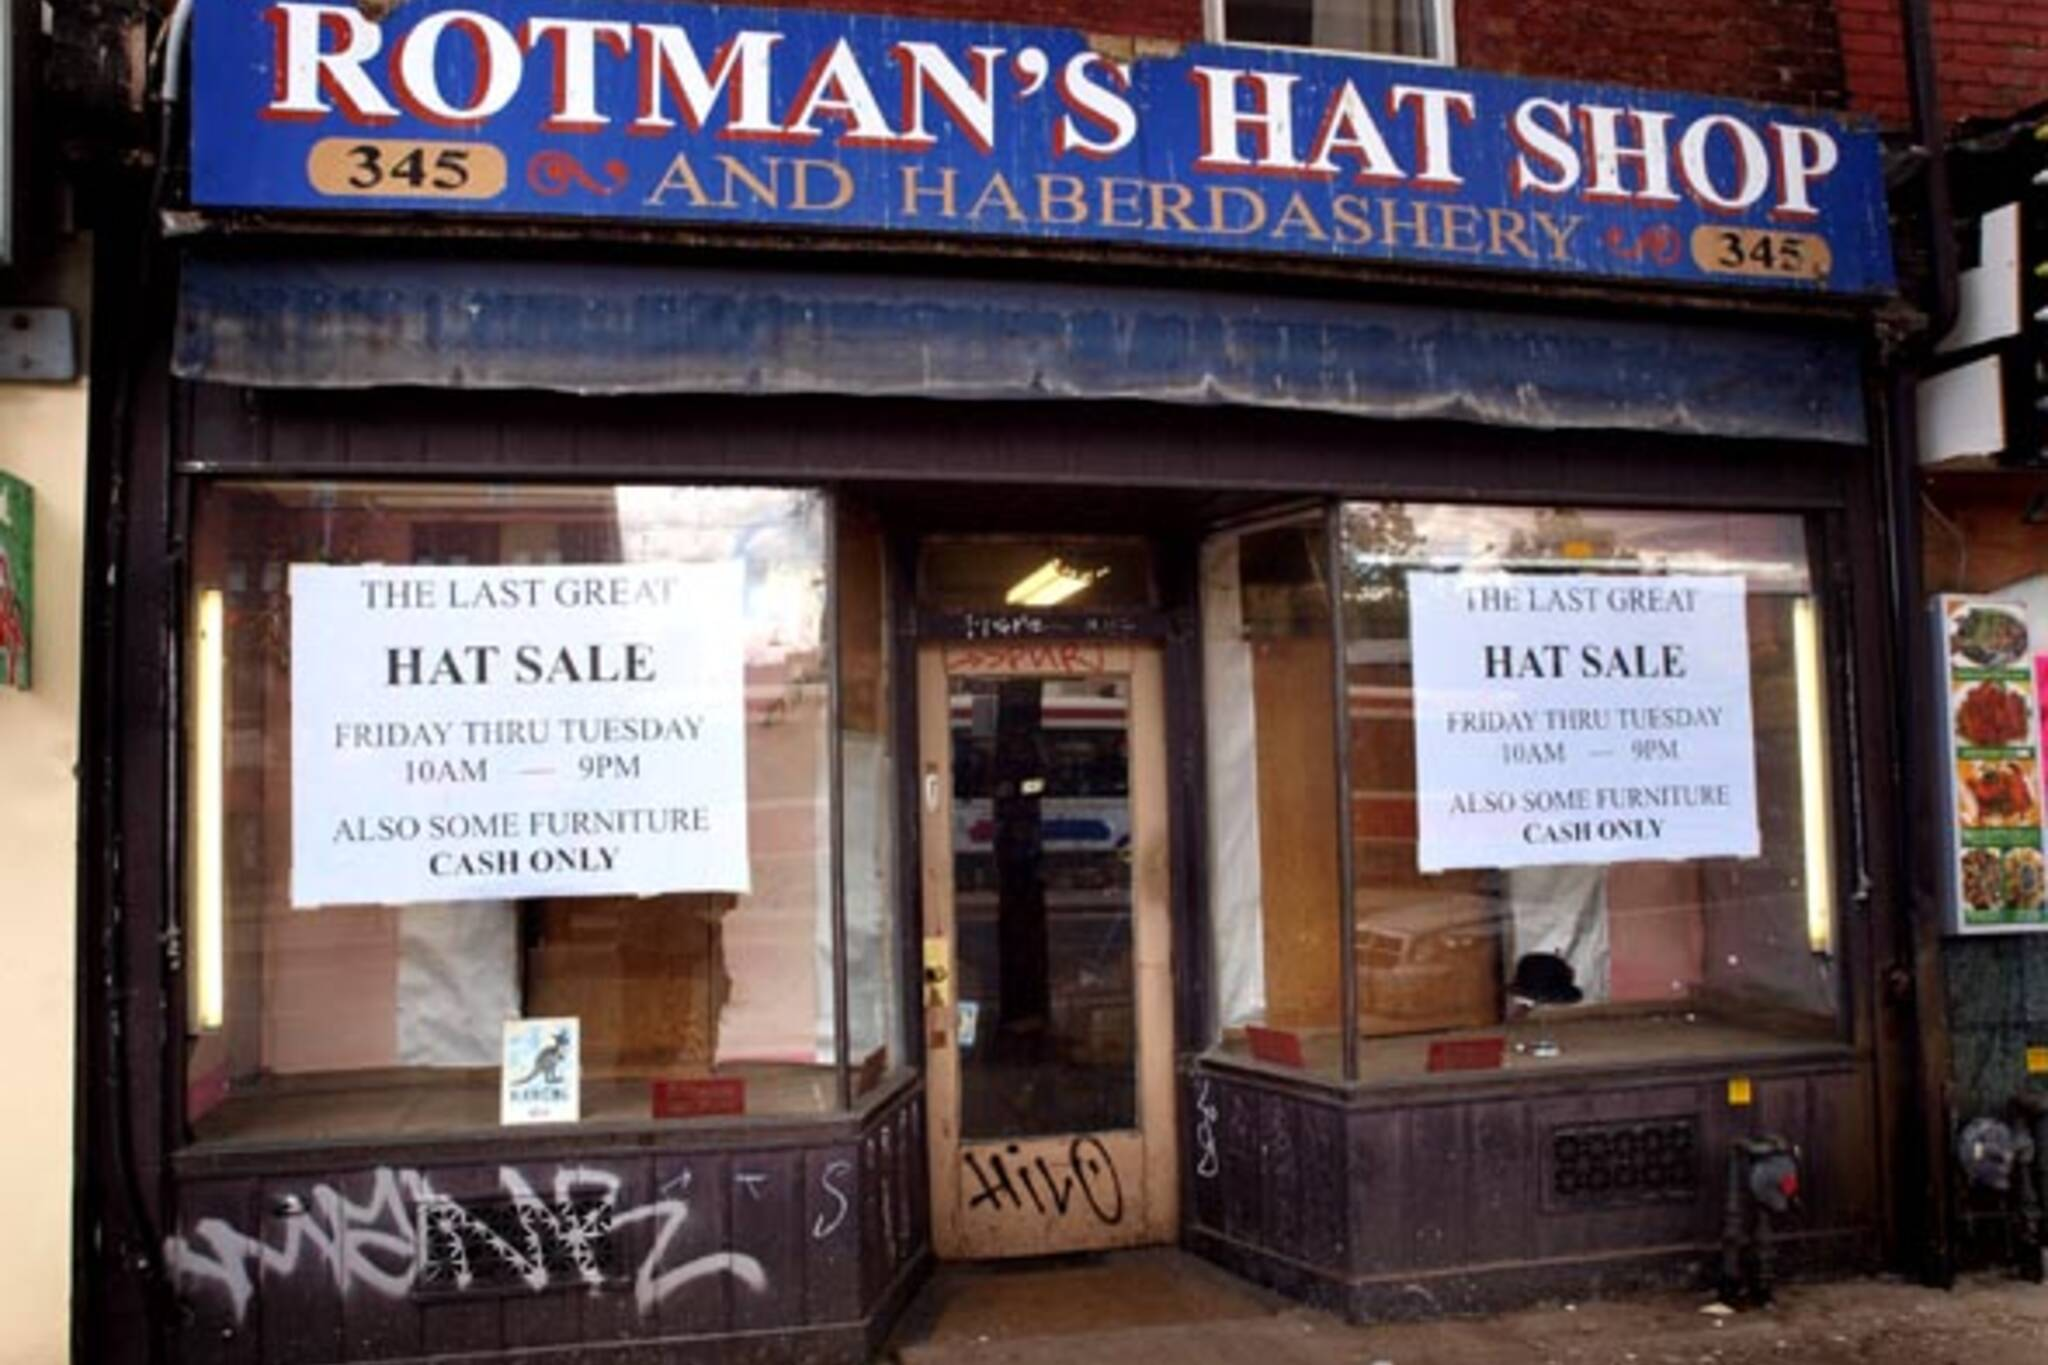 Rotman's Hats closes